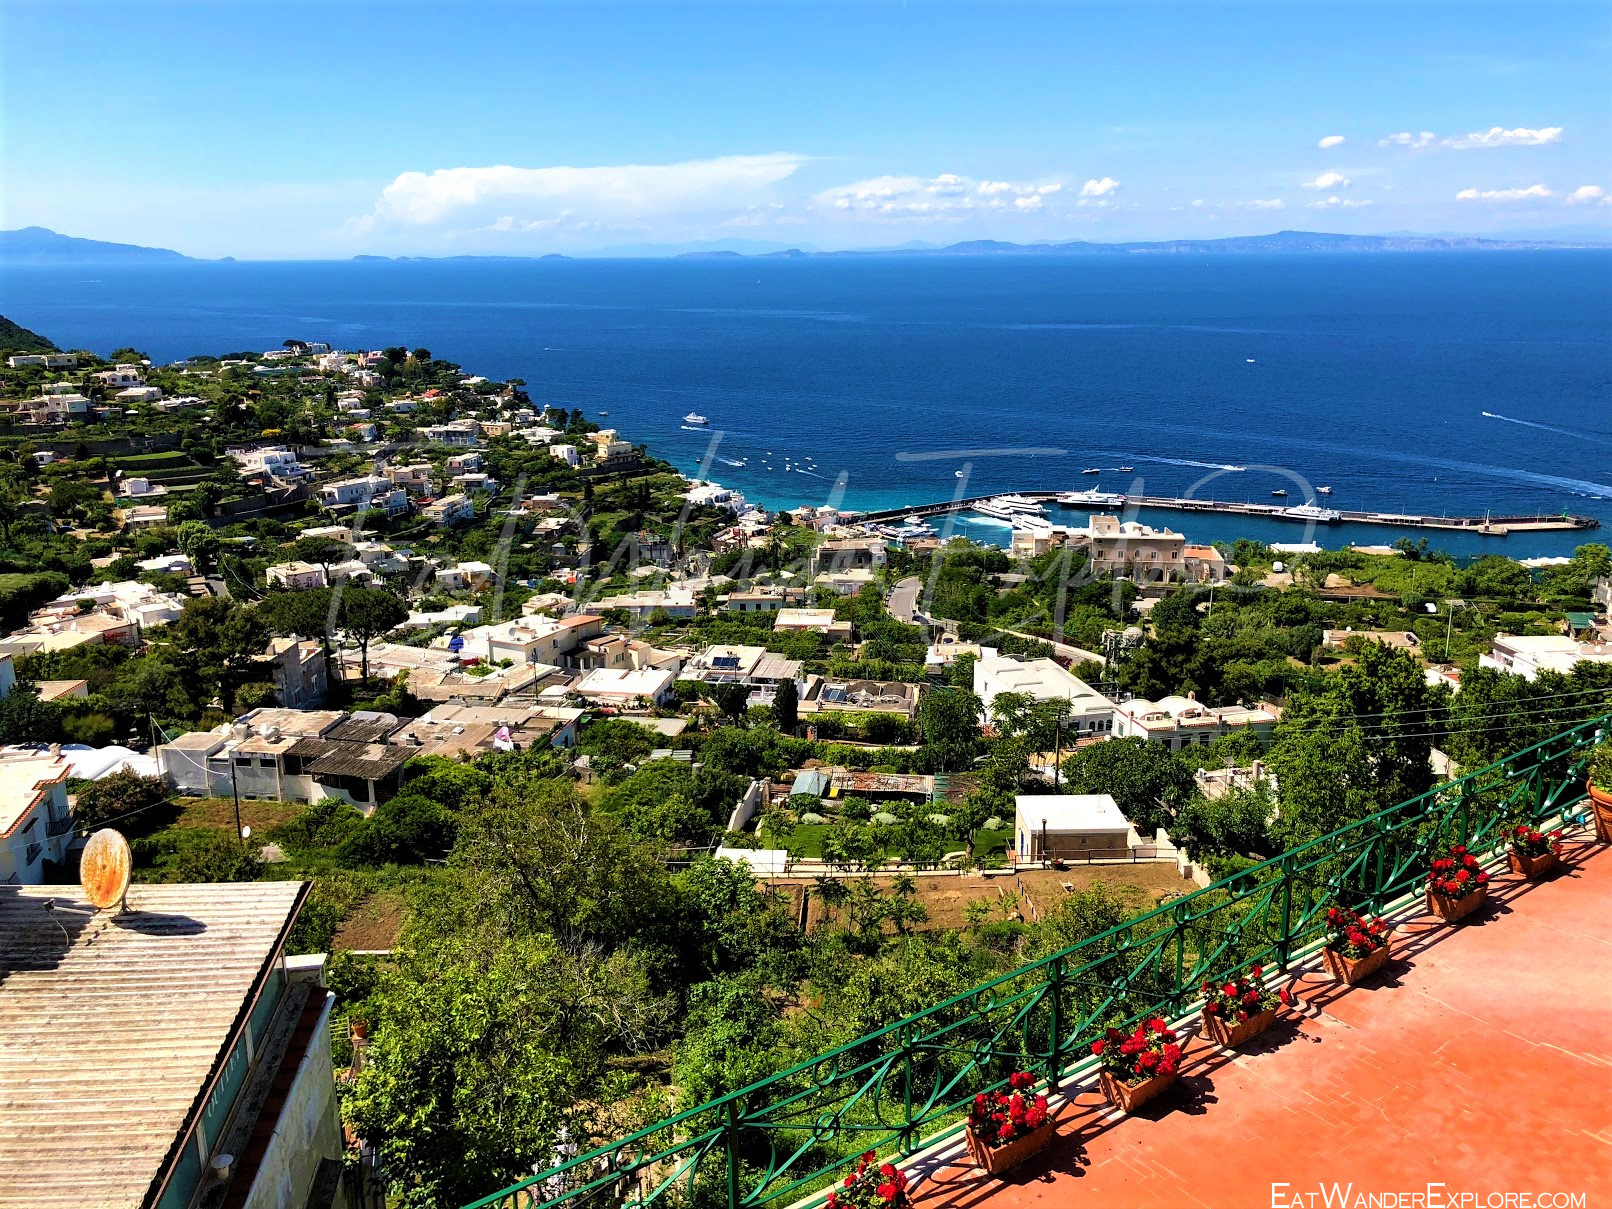 View of Capri from the top